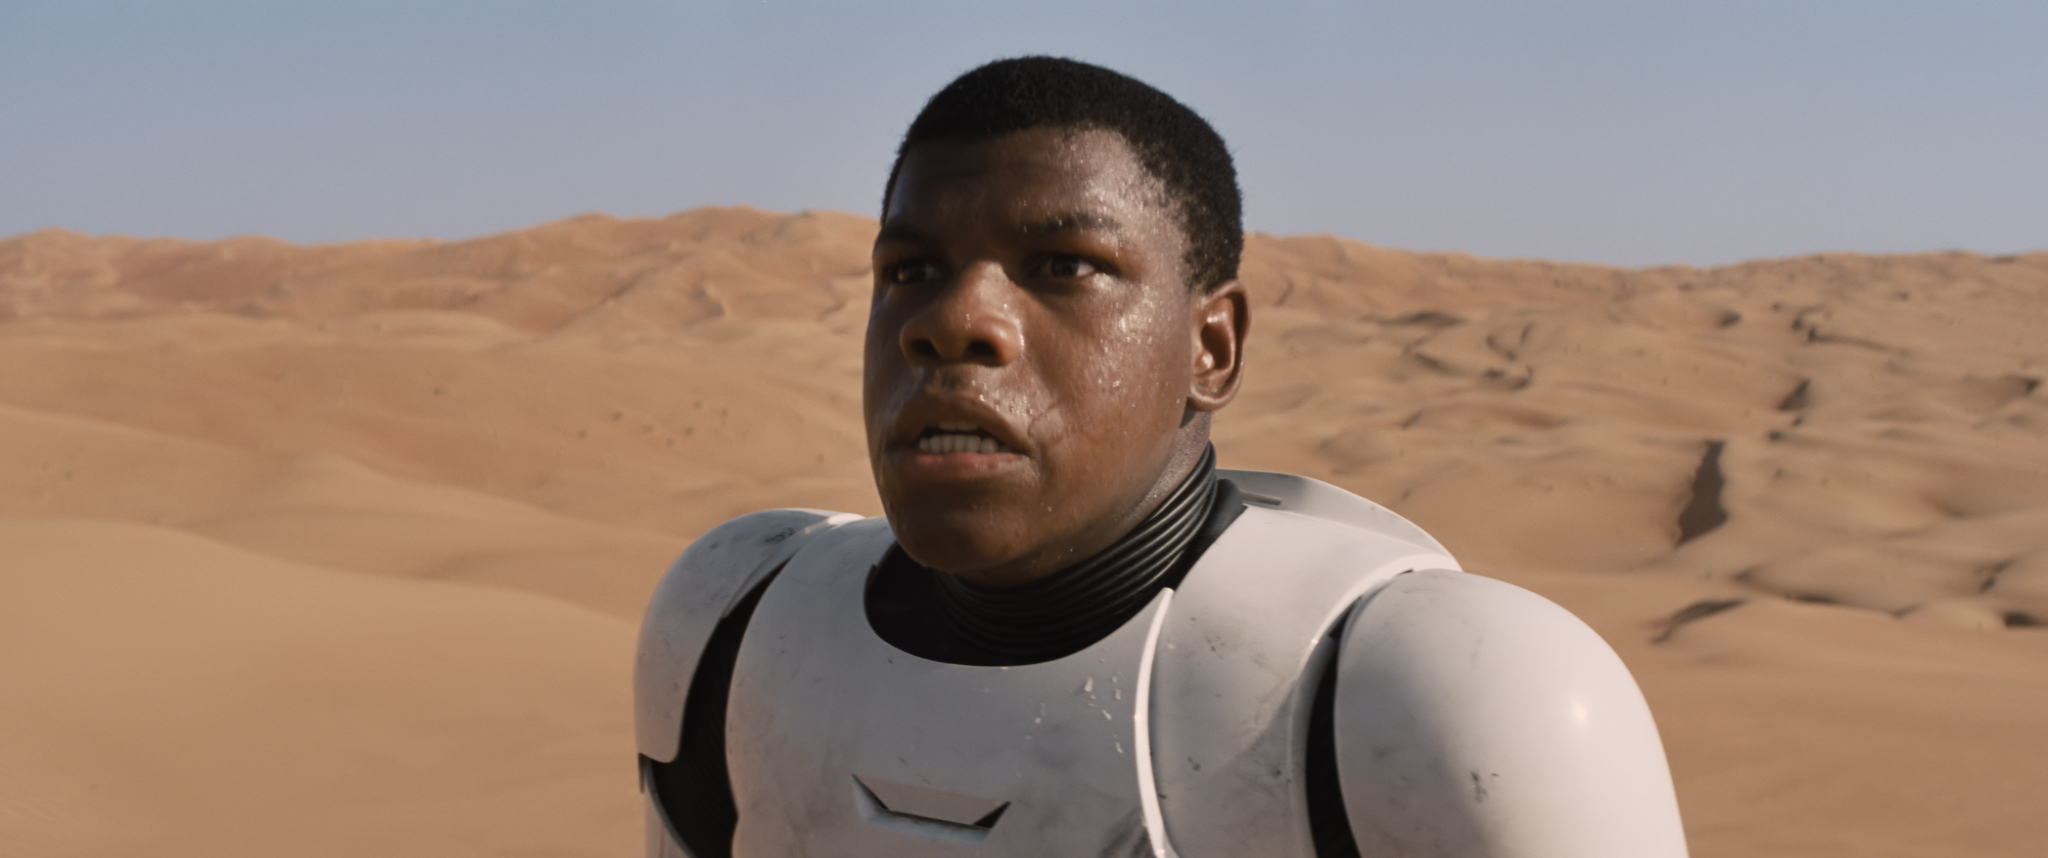 John Boyega portrays a stormtrooper in the new Star Wars movie.